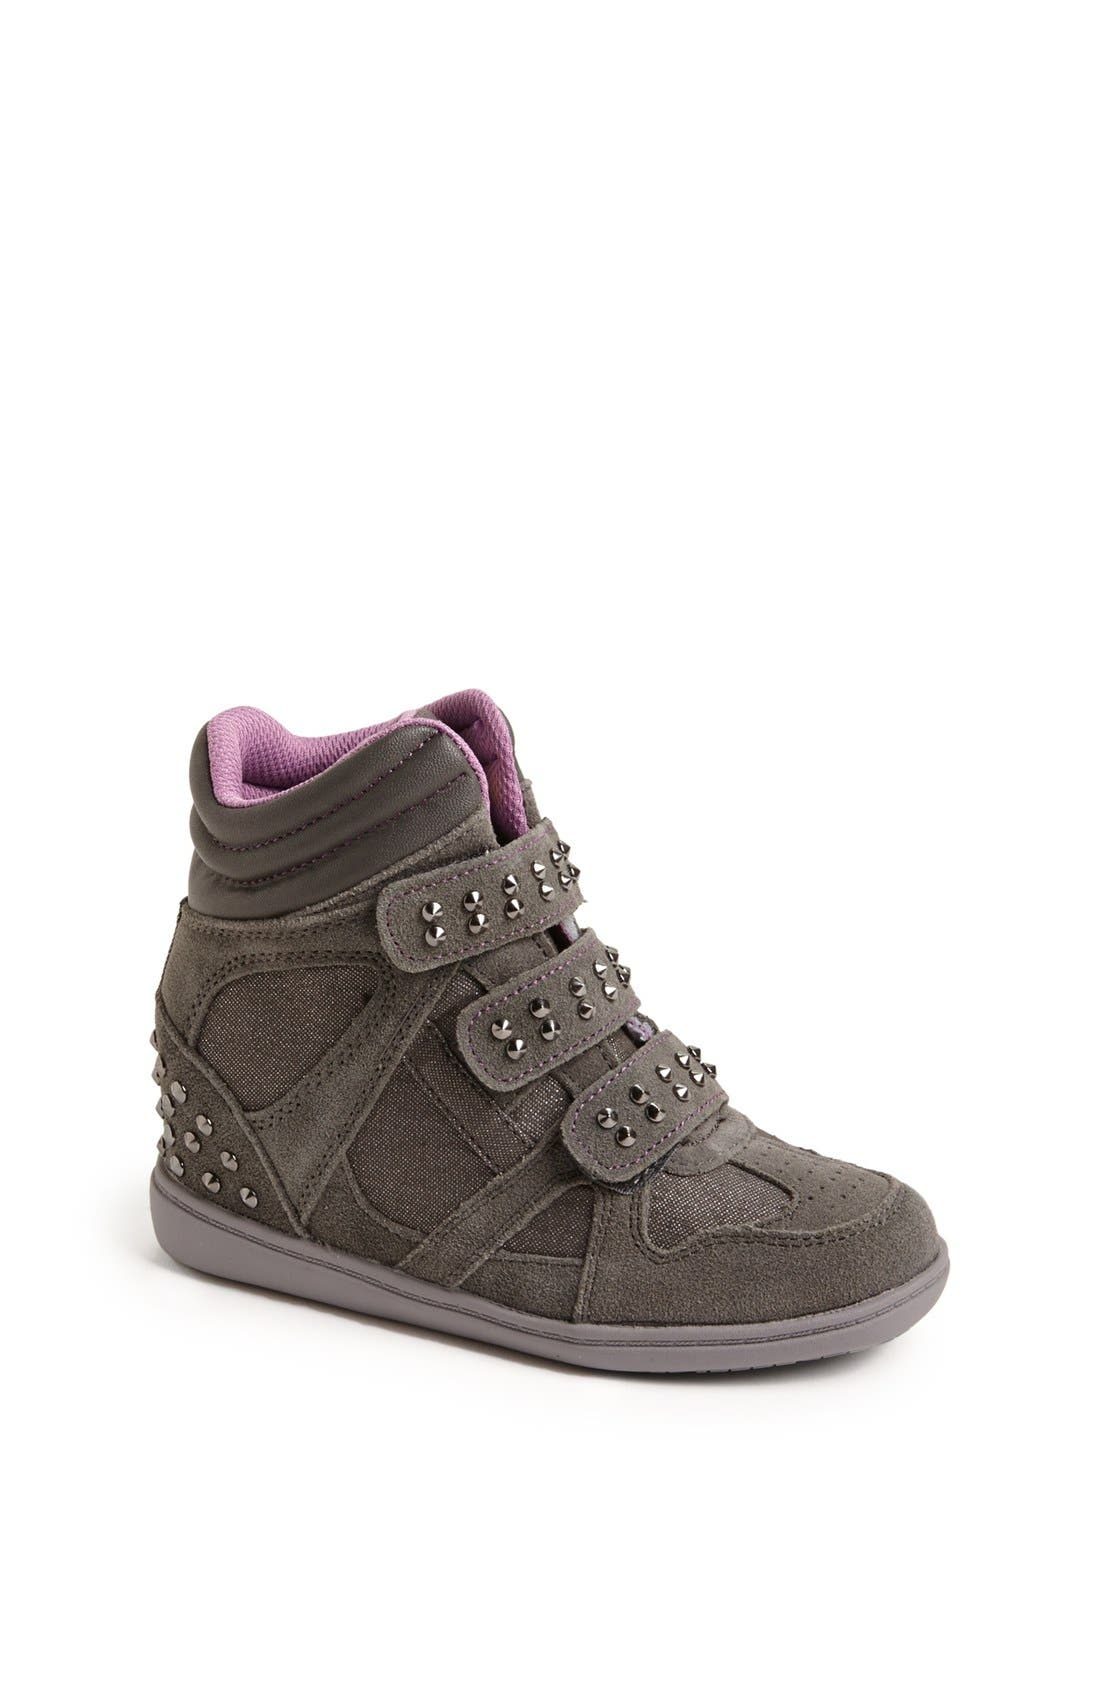 51f27be1eb8 Buy skechers wedge sneakers for kids   OFF63% Discounted